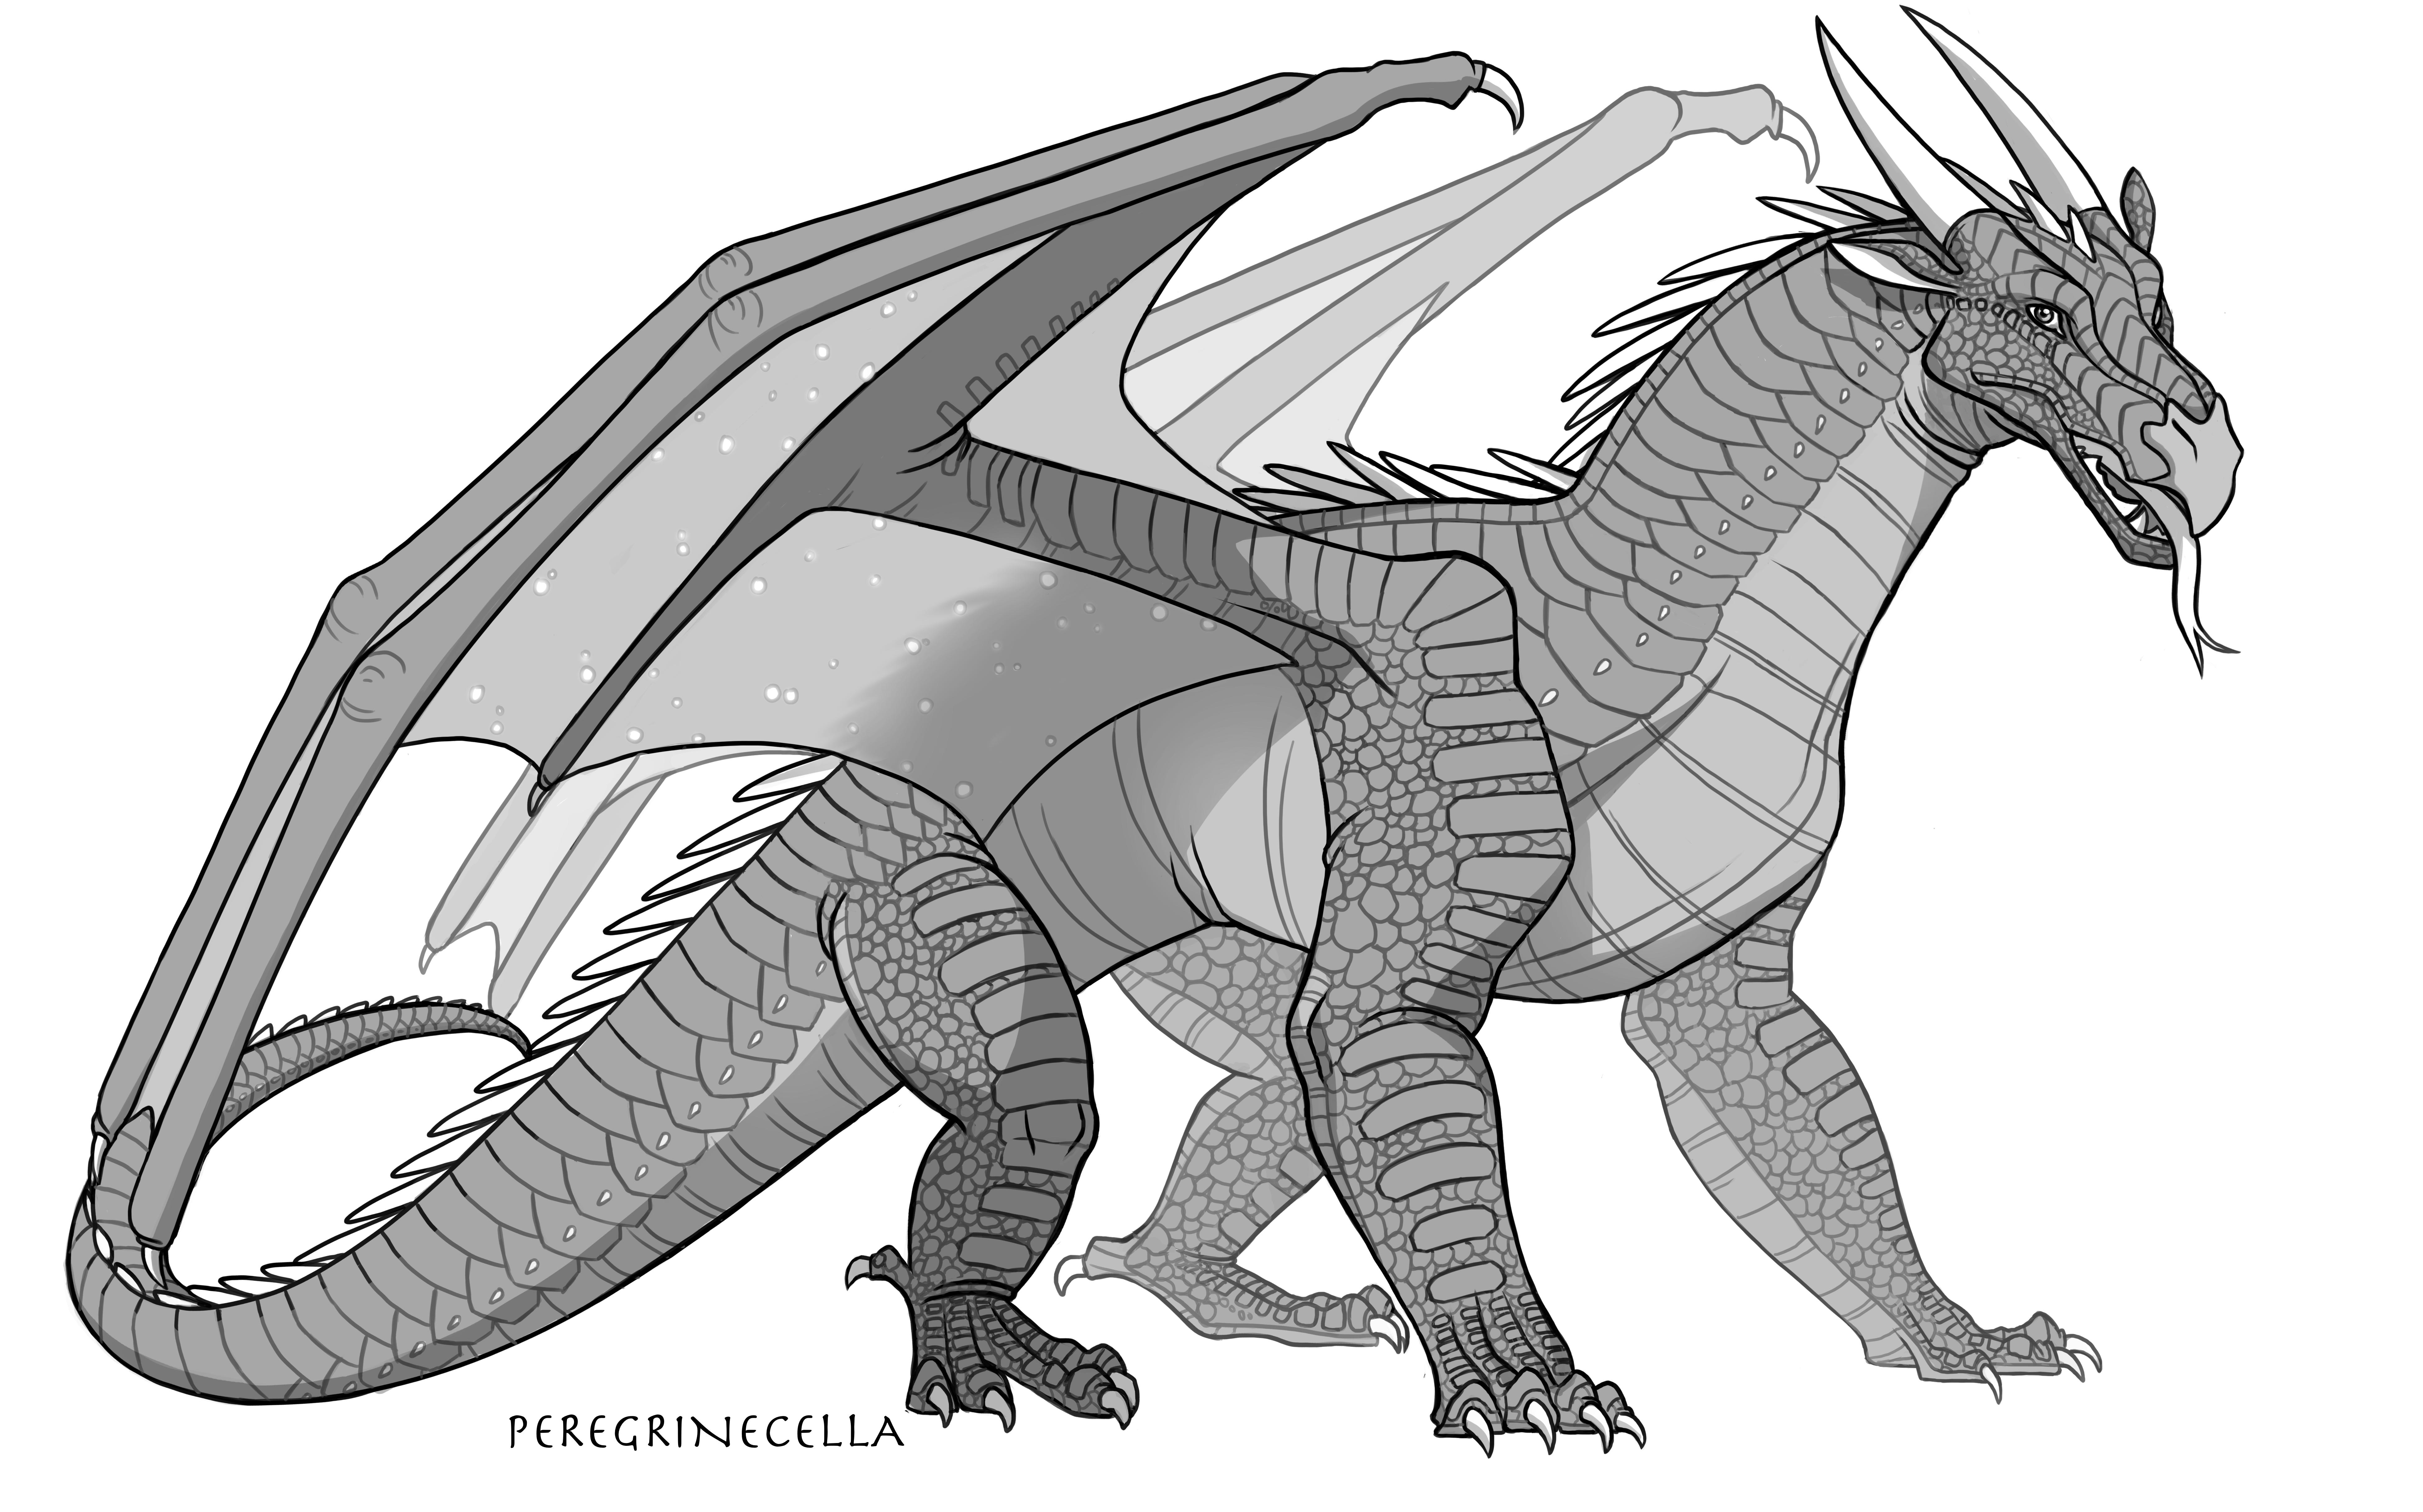 Nightwing Base By Peregrinecella On Deviantart Wings Of Fire Dragons Wings Of Fire Fire Art